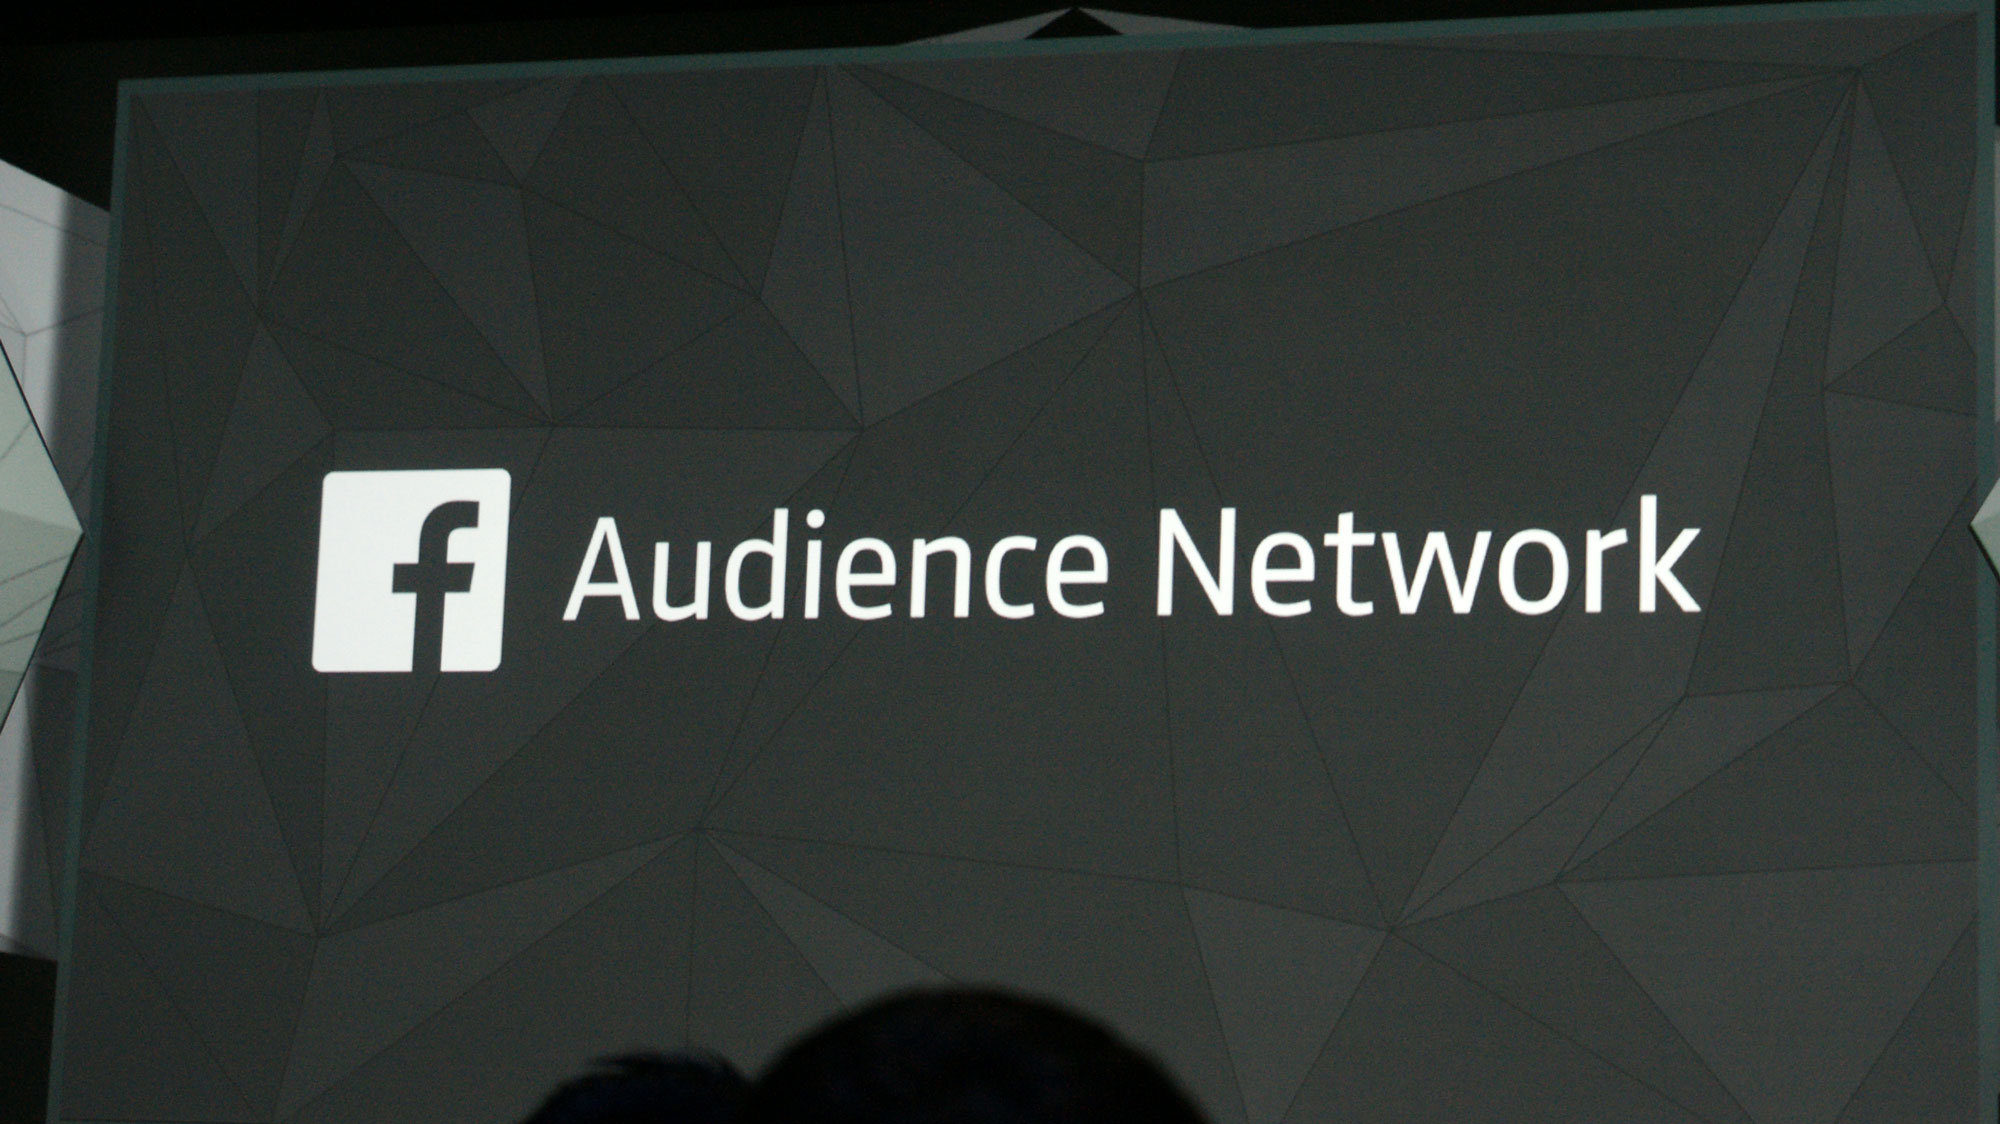 Facebook Unveils Audience Network, An Ad Network for Apps